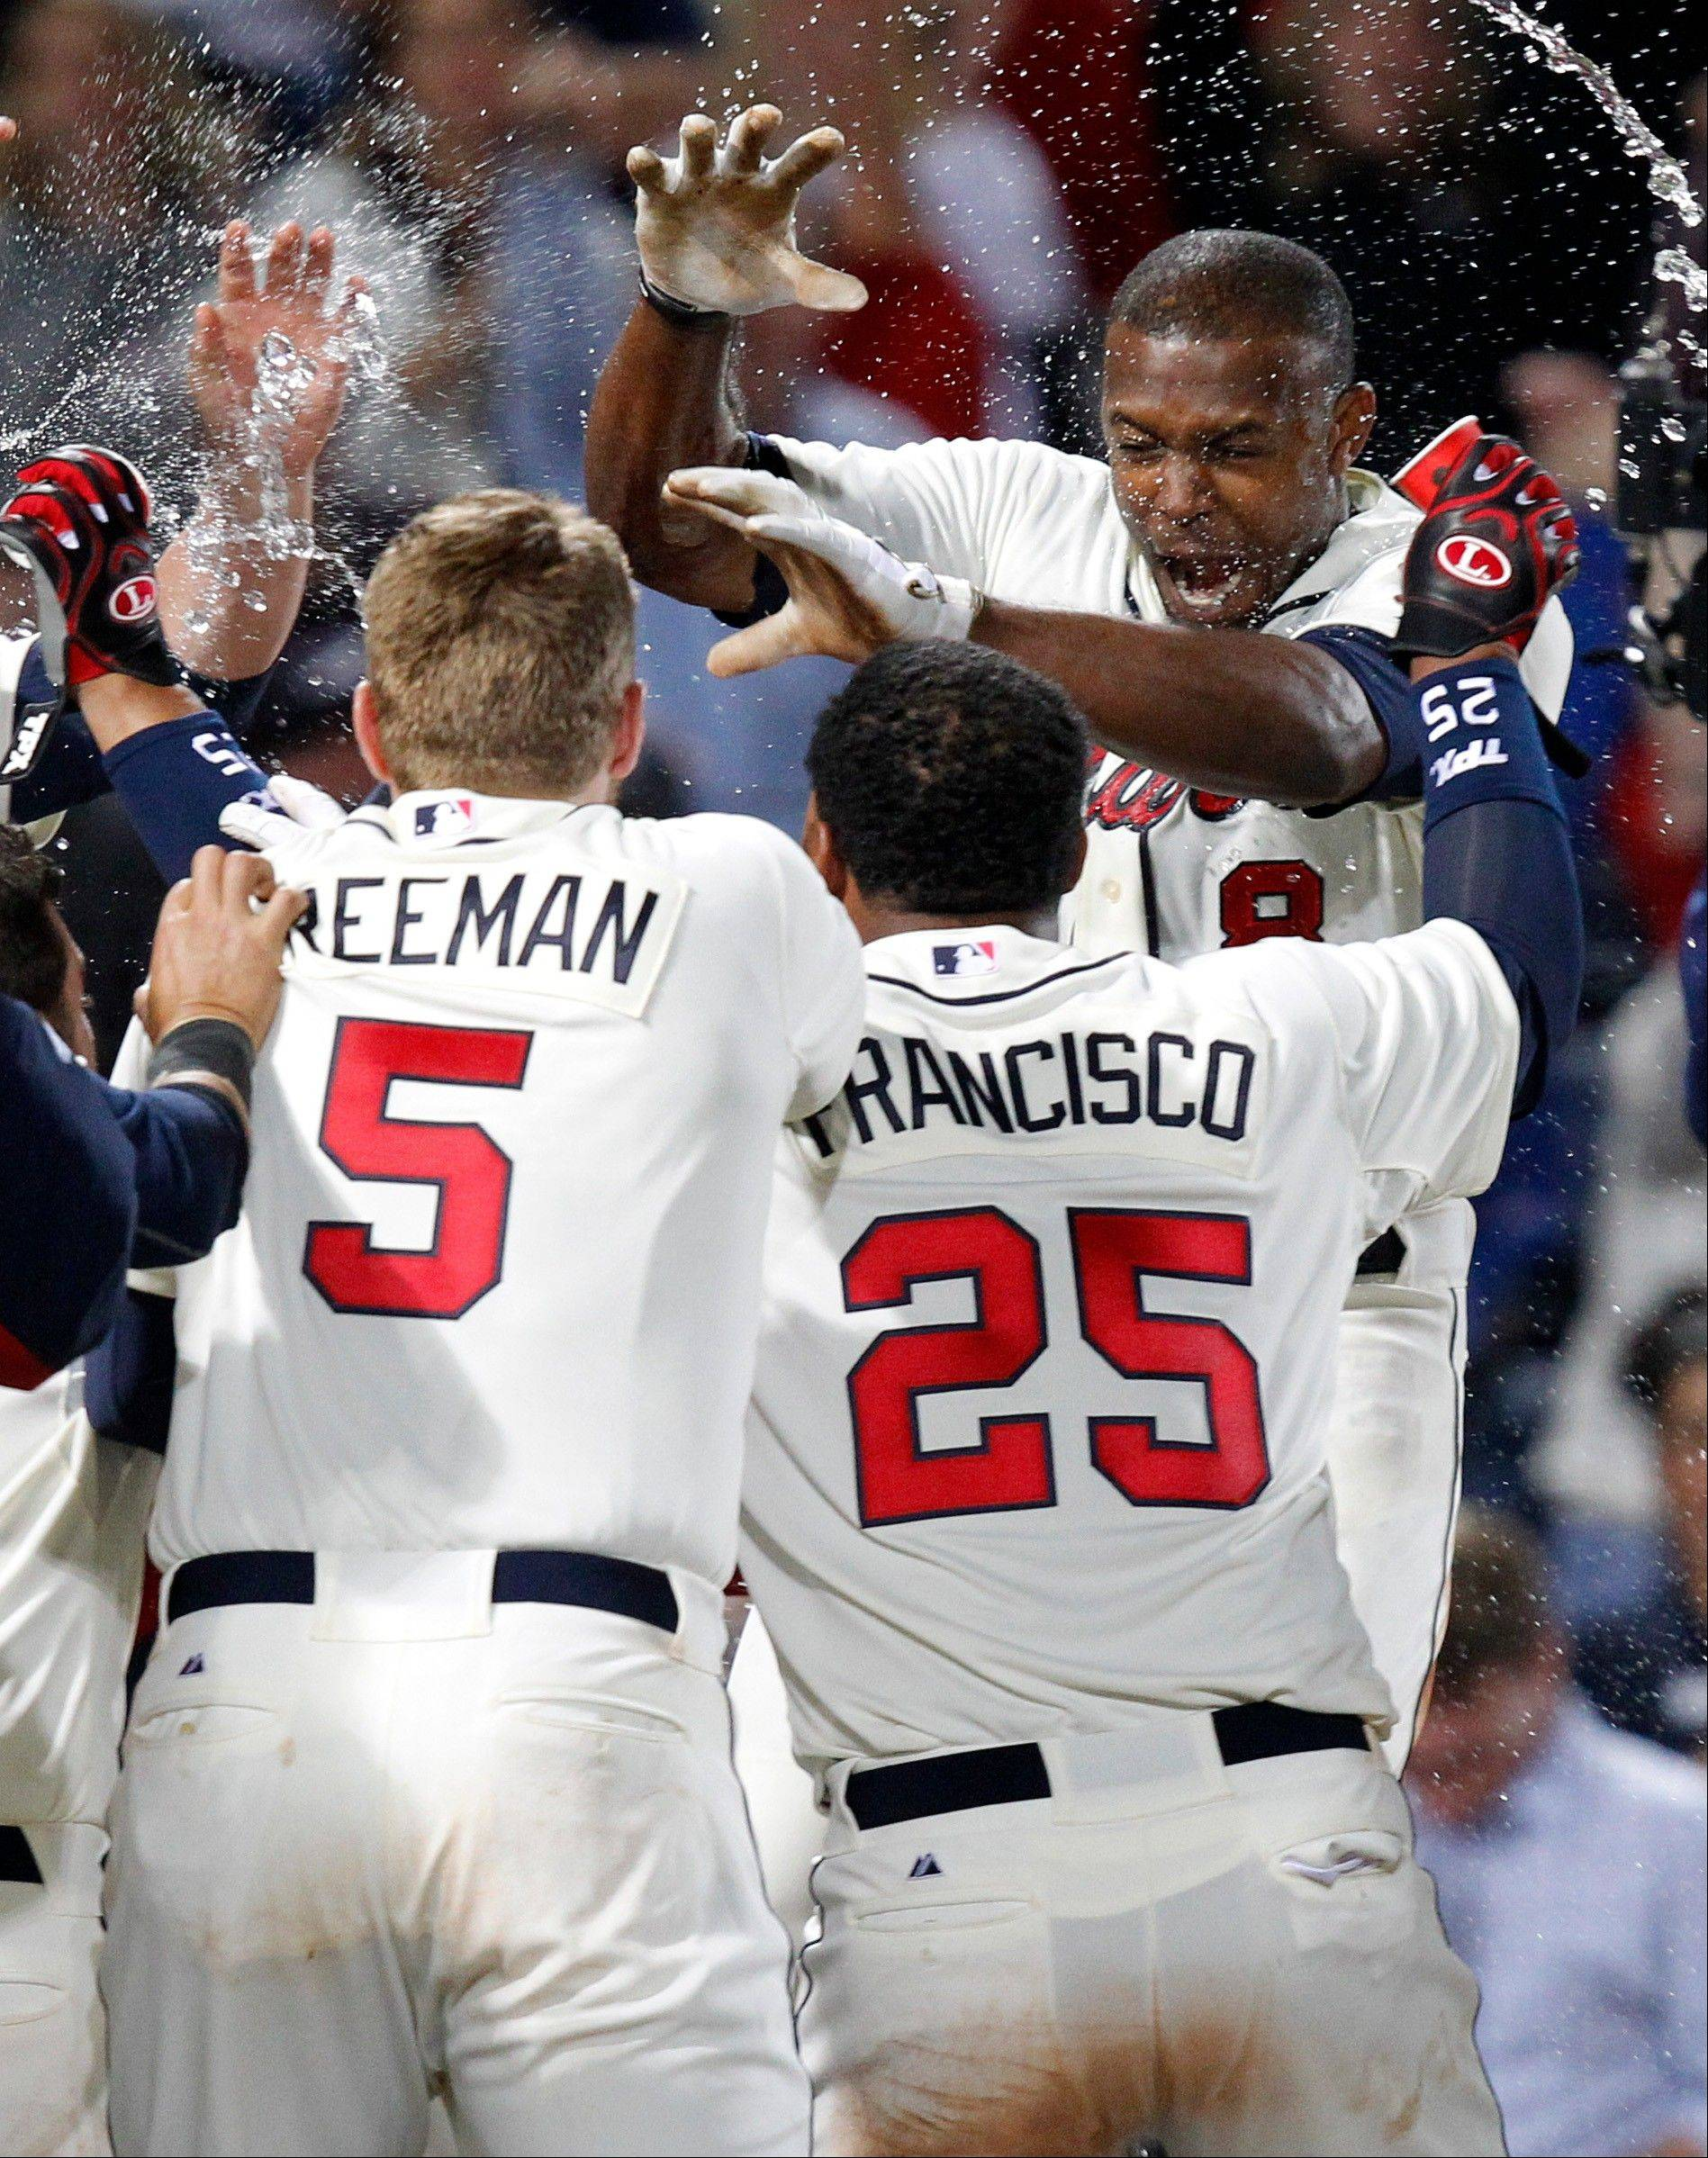 The Braves' Justin Upton, top right, is doused by teammates as he crosses home plate after hitting a walk-off home run in the ninth inning against Cubs reliever Carlos Marmol. Two batters earlier, Justin's brother B.J. had tied the game with a home run.